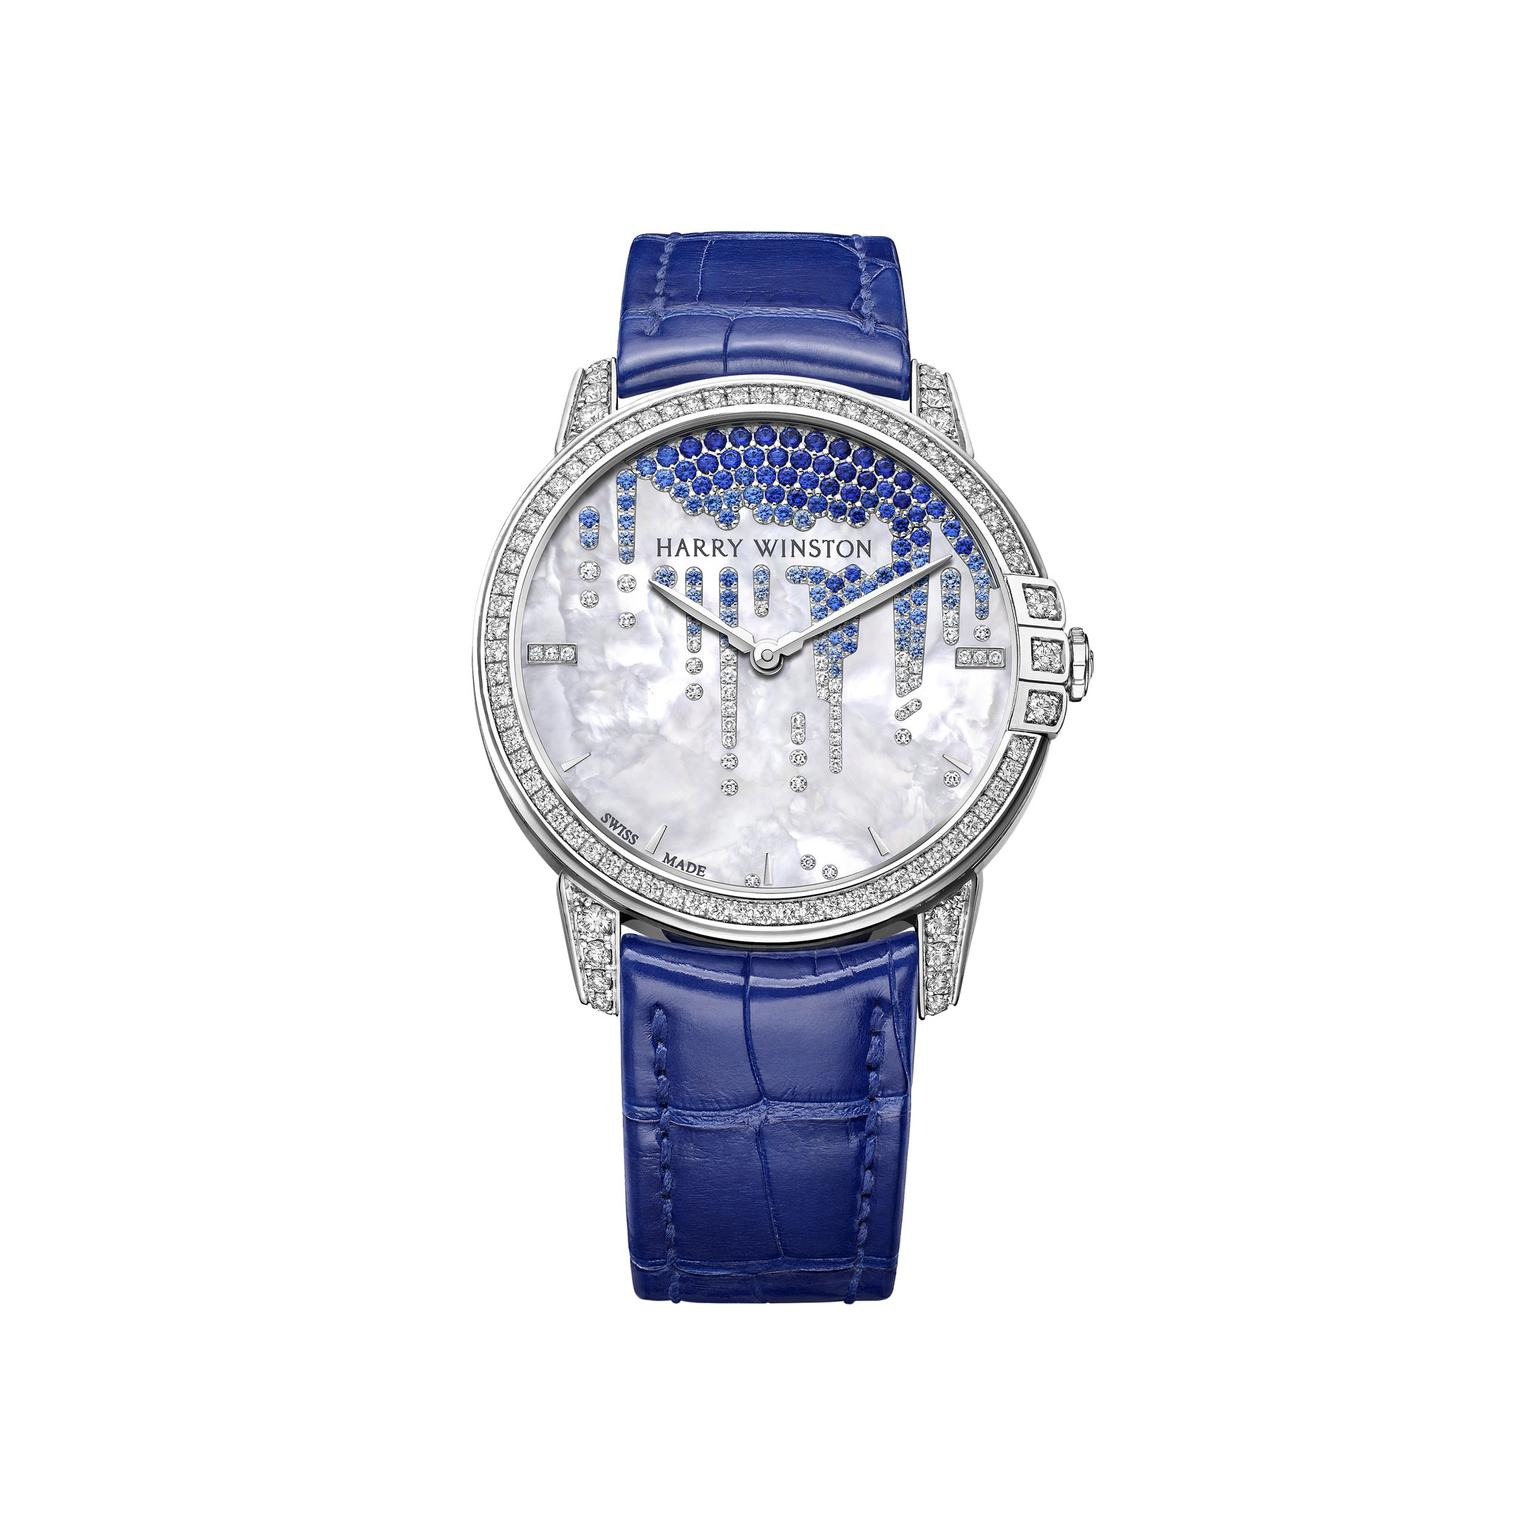 Harry Winston Midnight Diamond Stalactite white gold pearl watch